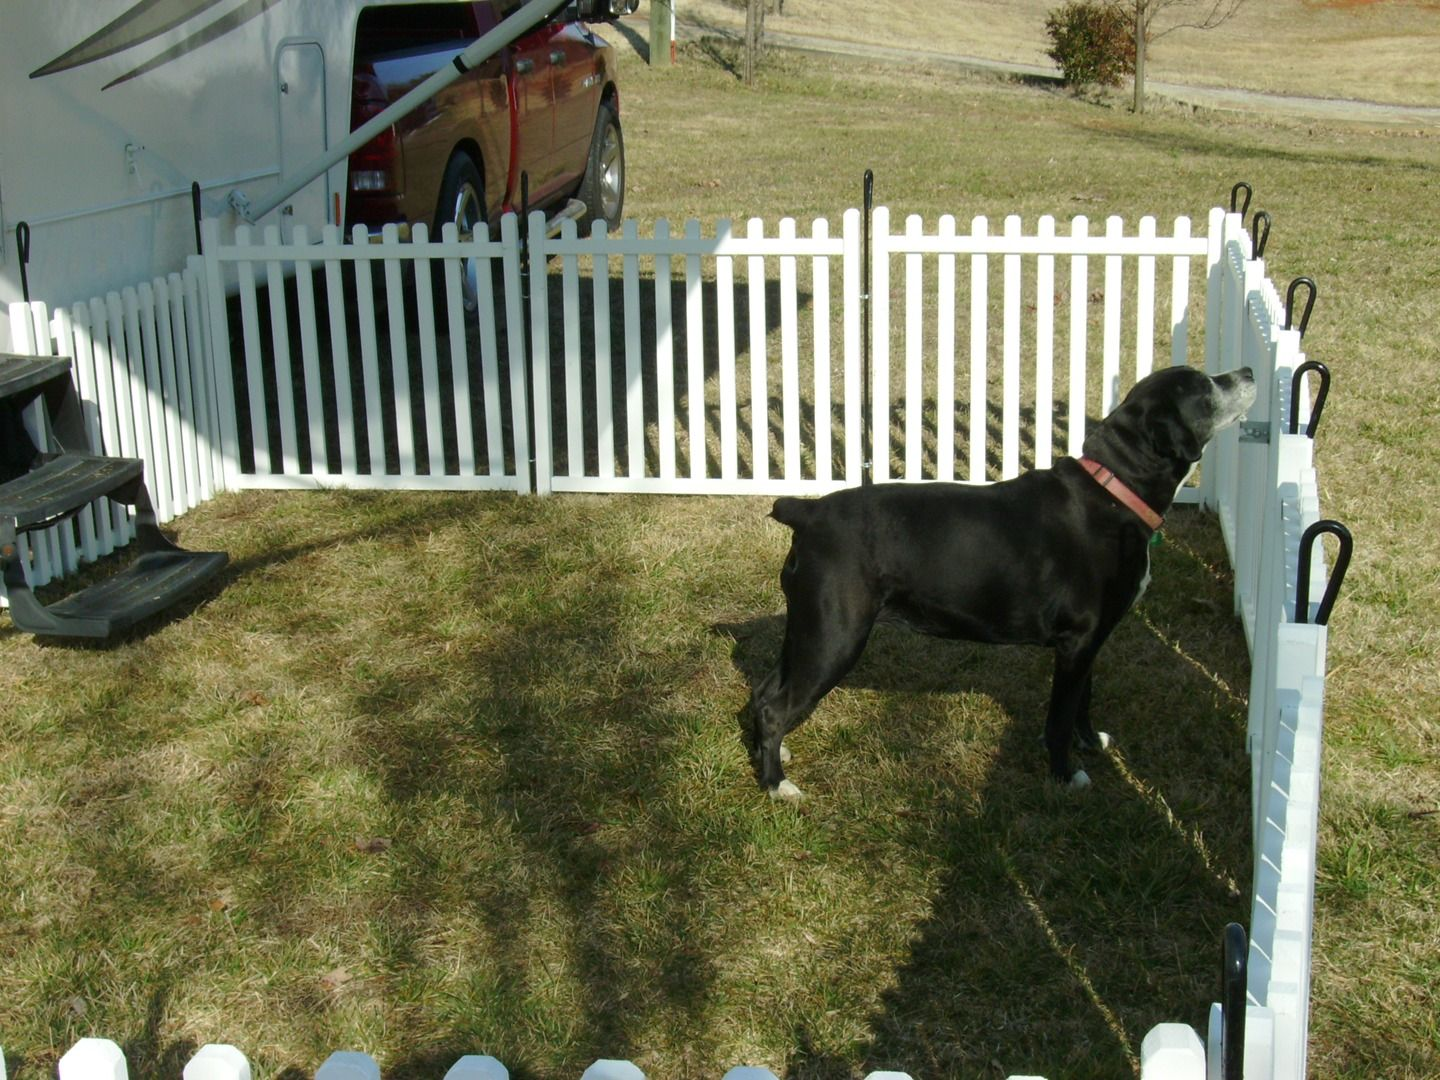 Recinzioni Per Gatti Giardino Image Result For Rv Dog Fence Dogs And Rving Portable